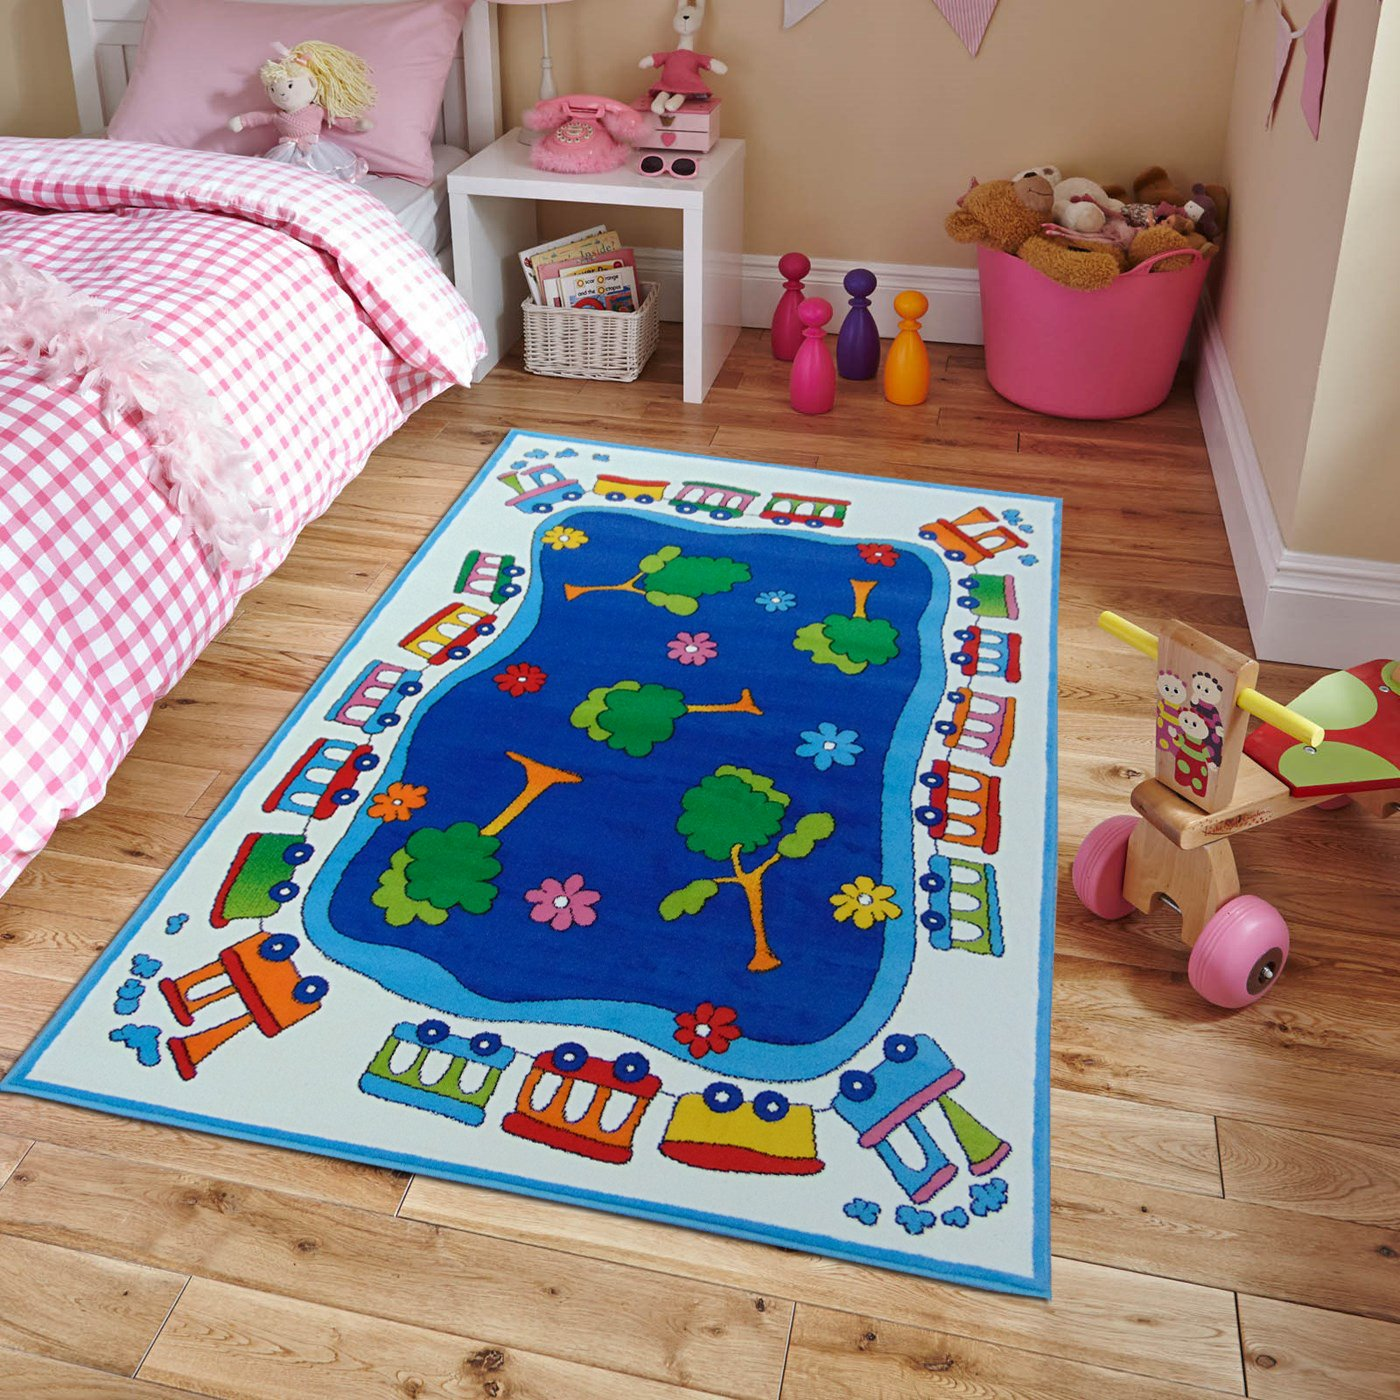 zarkmercs dorm classrooms instructive rug preschool rugs classroom animal tribal educational for